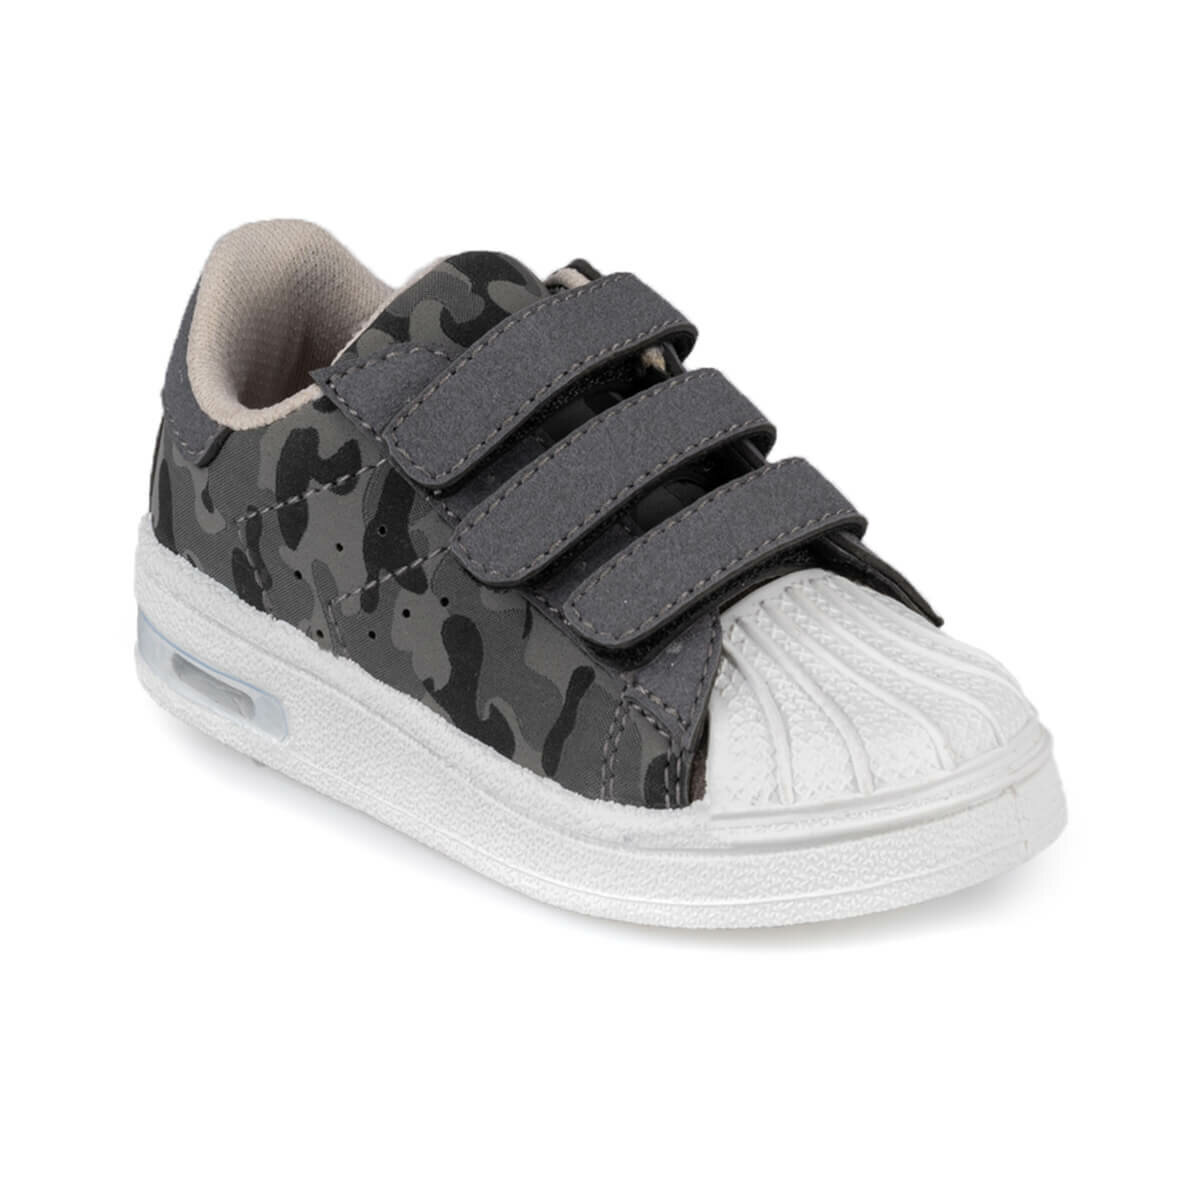 FLO MONTY CAMO 9PR Gray Male Child Shoes KINETIX